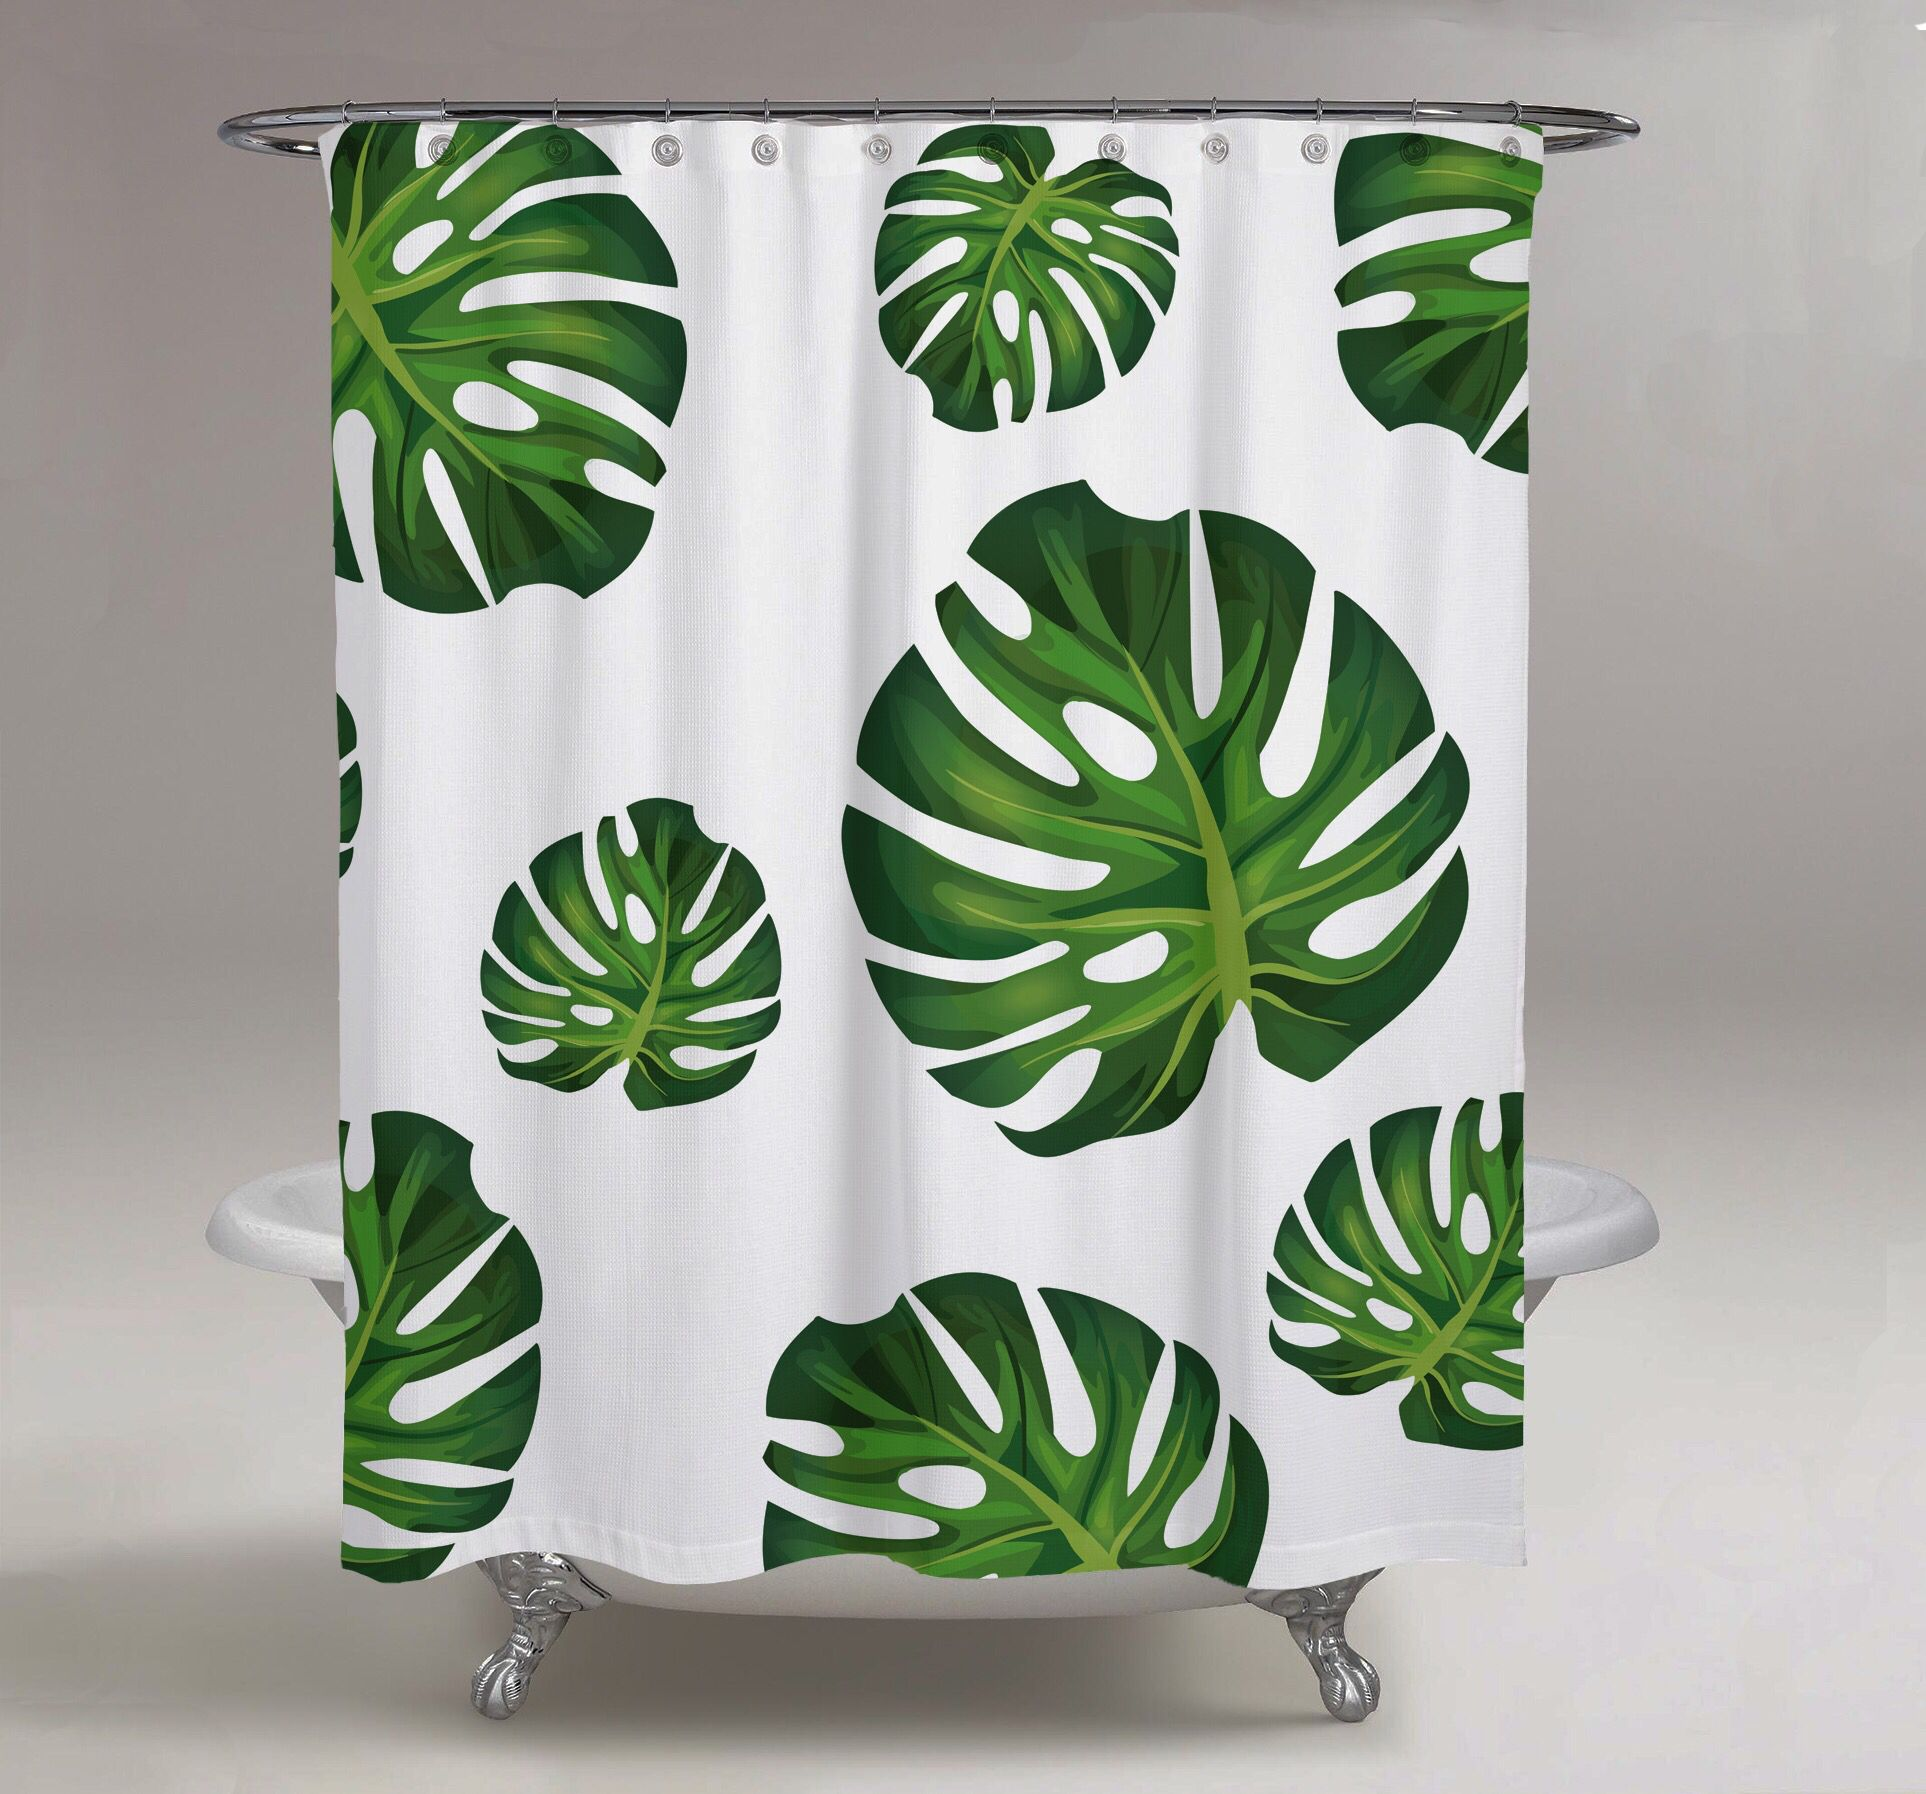 White Shower Curtain With Palm Trees Available Now On Etsy Shop